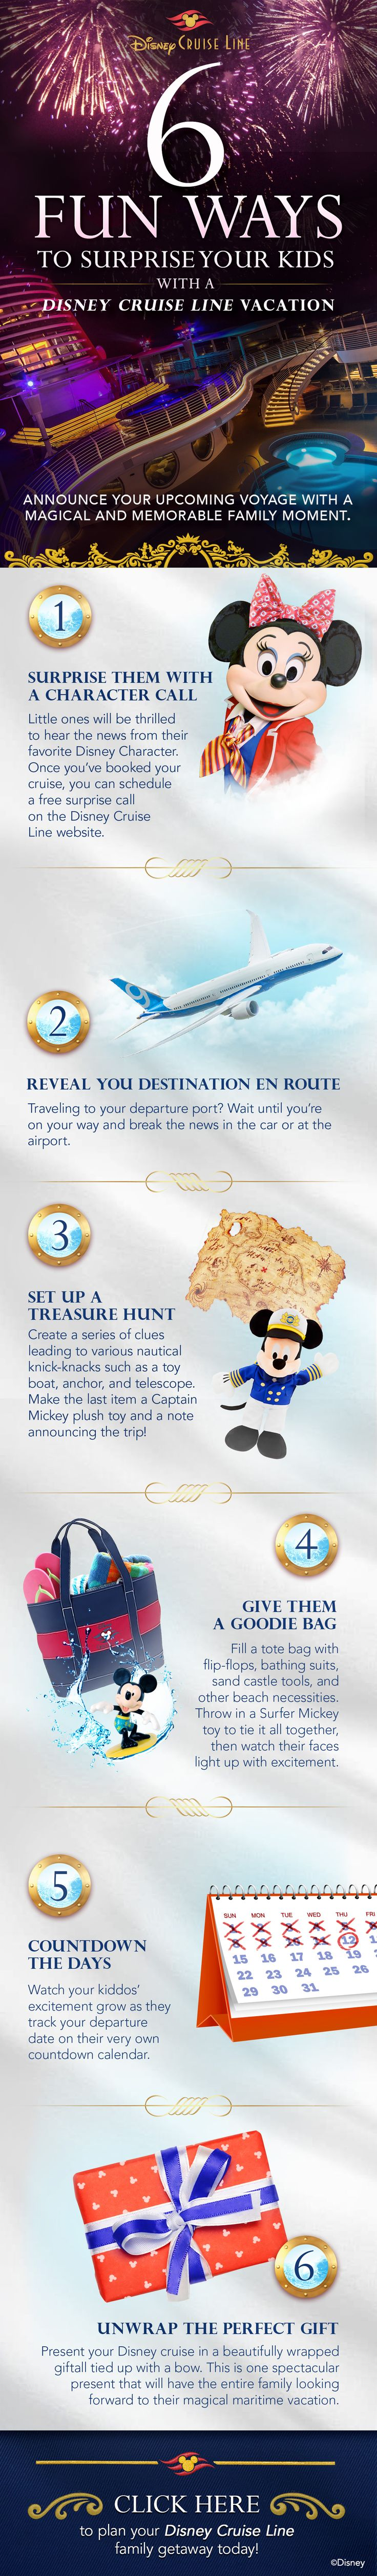 Give the gift of a Disney Cruise vacation with these fun ways to surprise your kids!